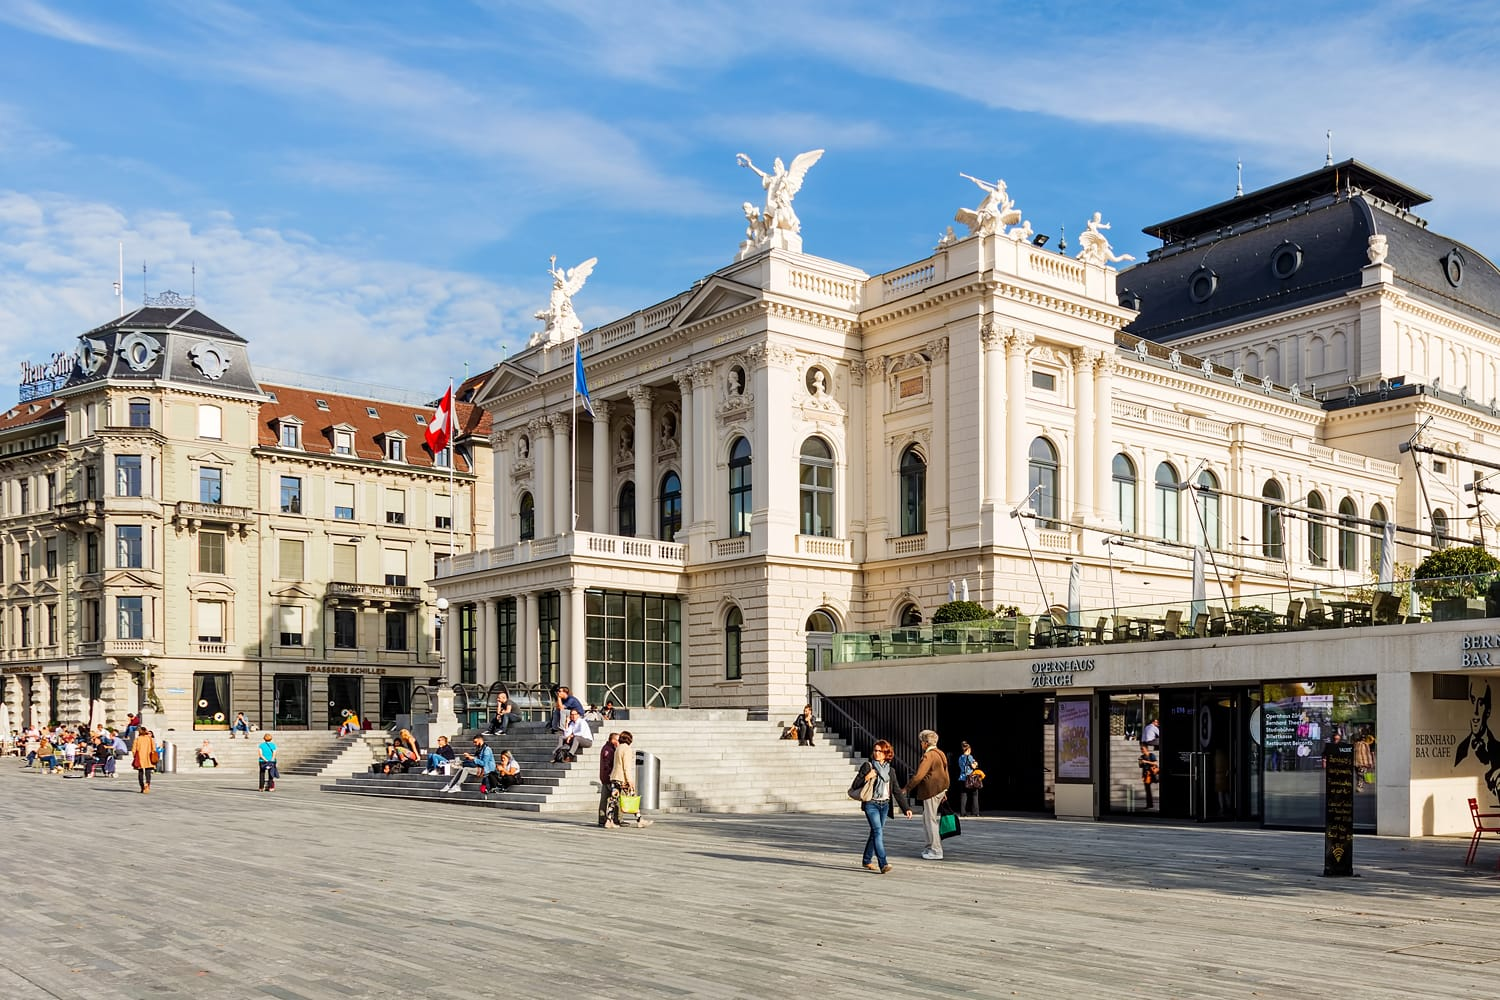 Zurich Opera House building, view from Sechselautenplatz square